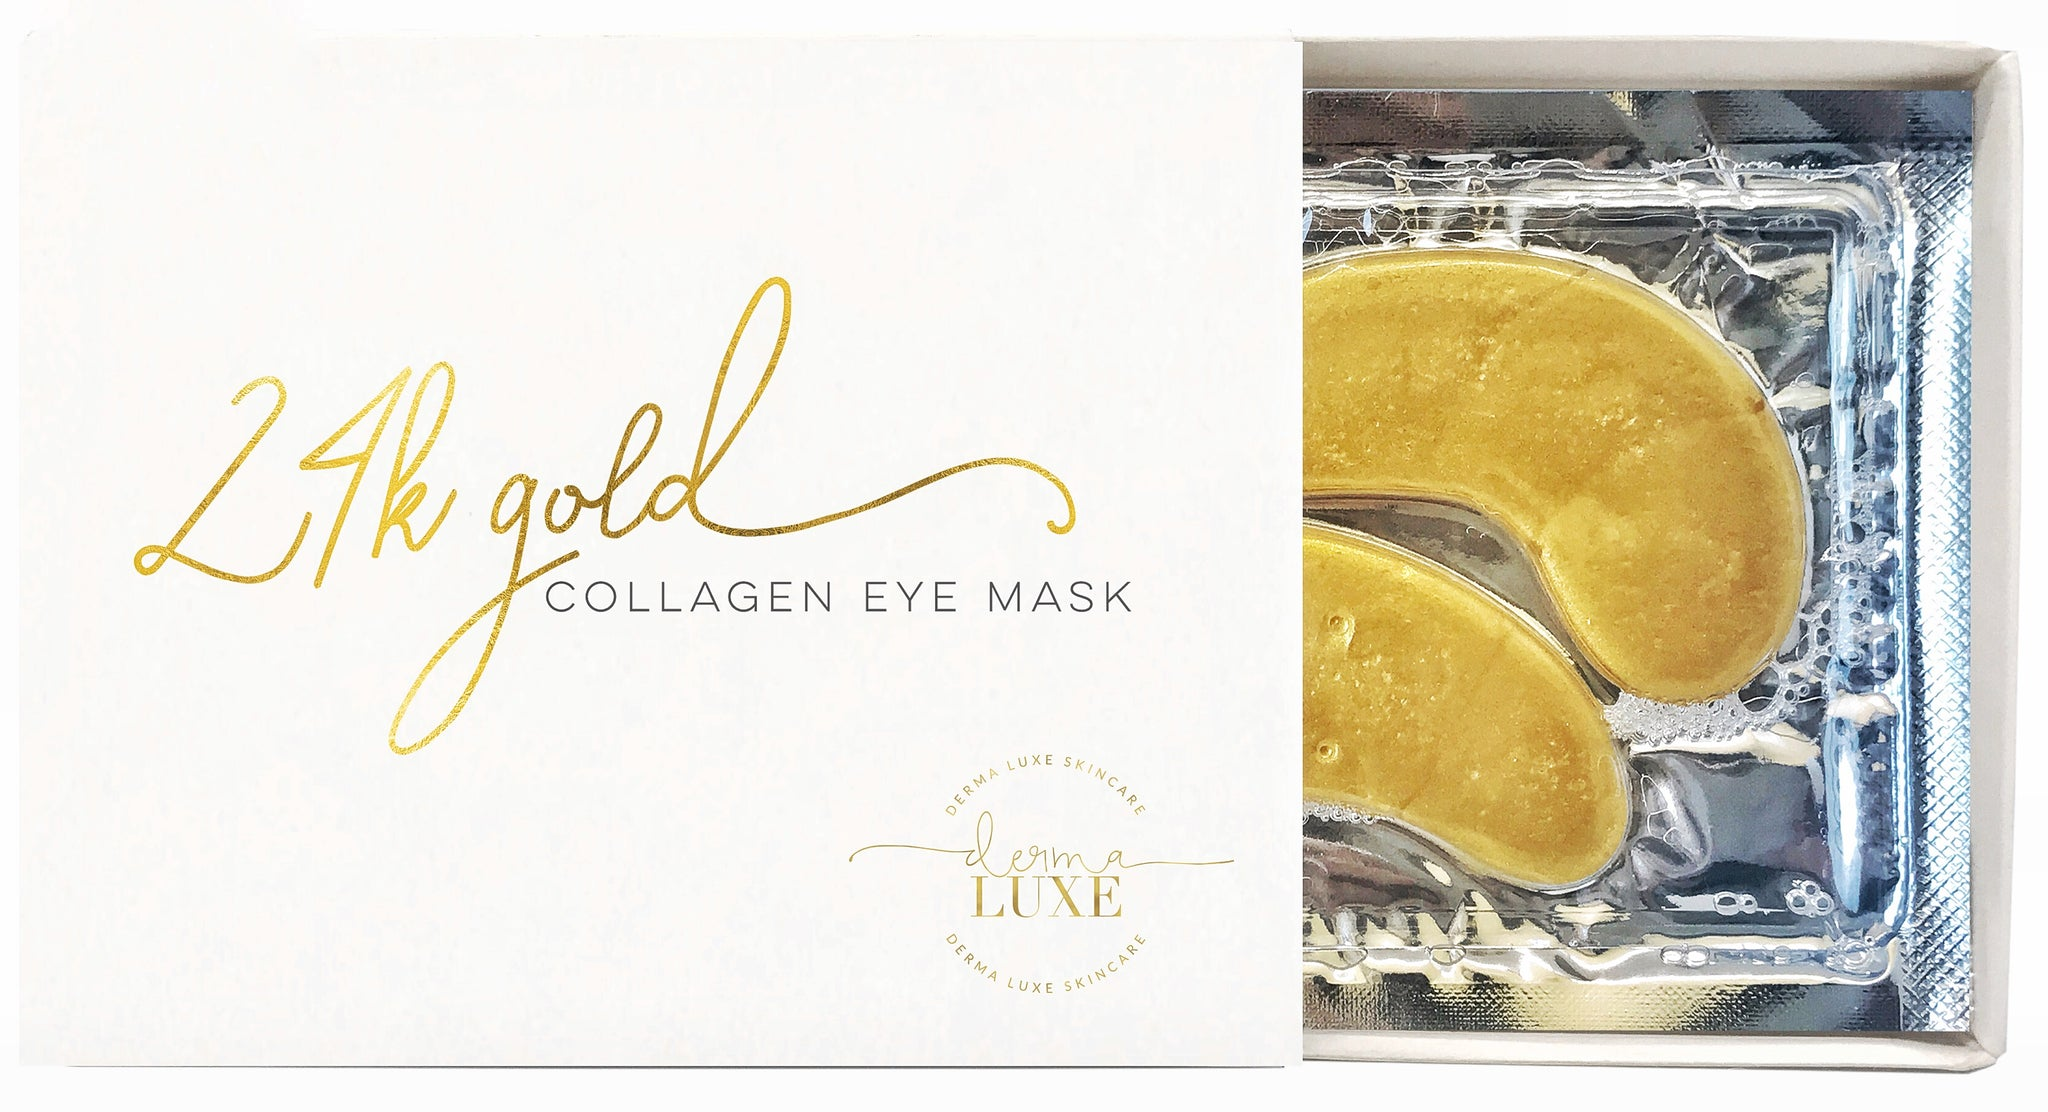 24k Gold Collagen Eye Mask 5pk